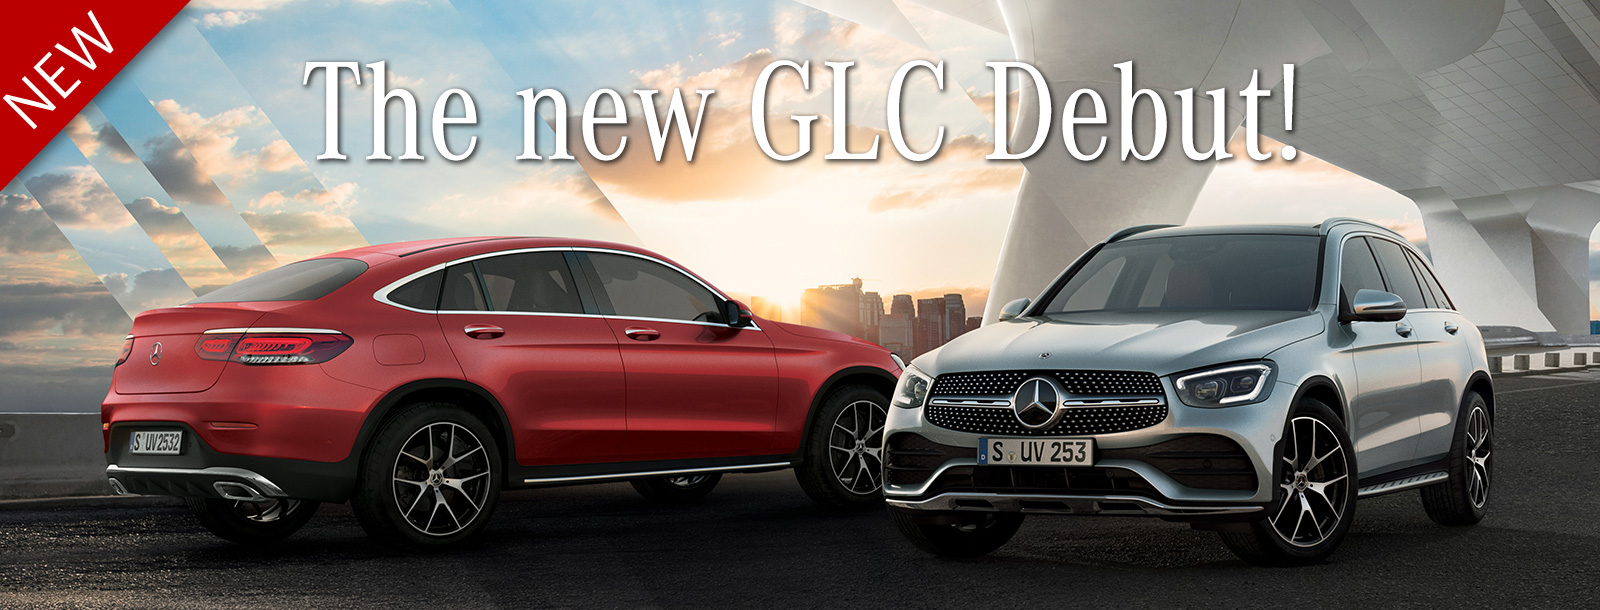 The new GLC